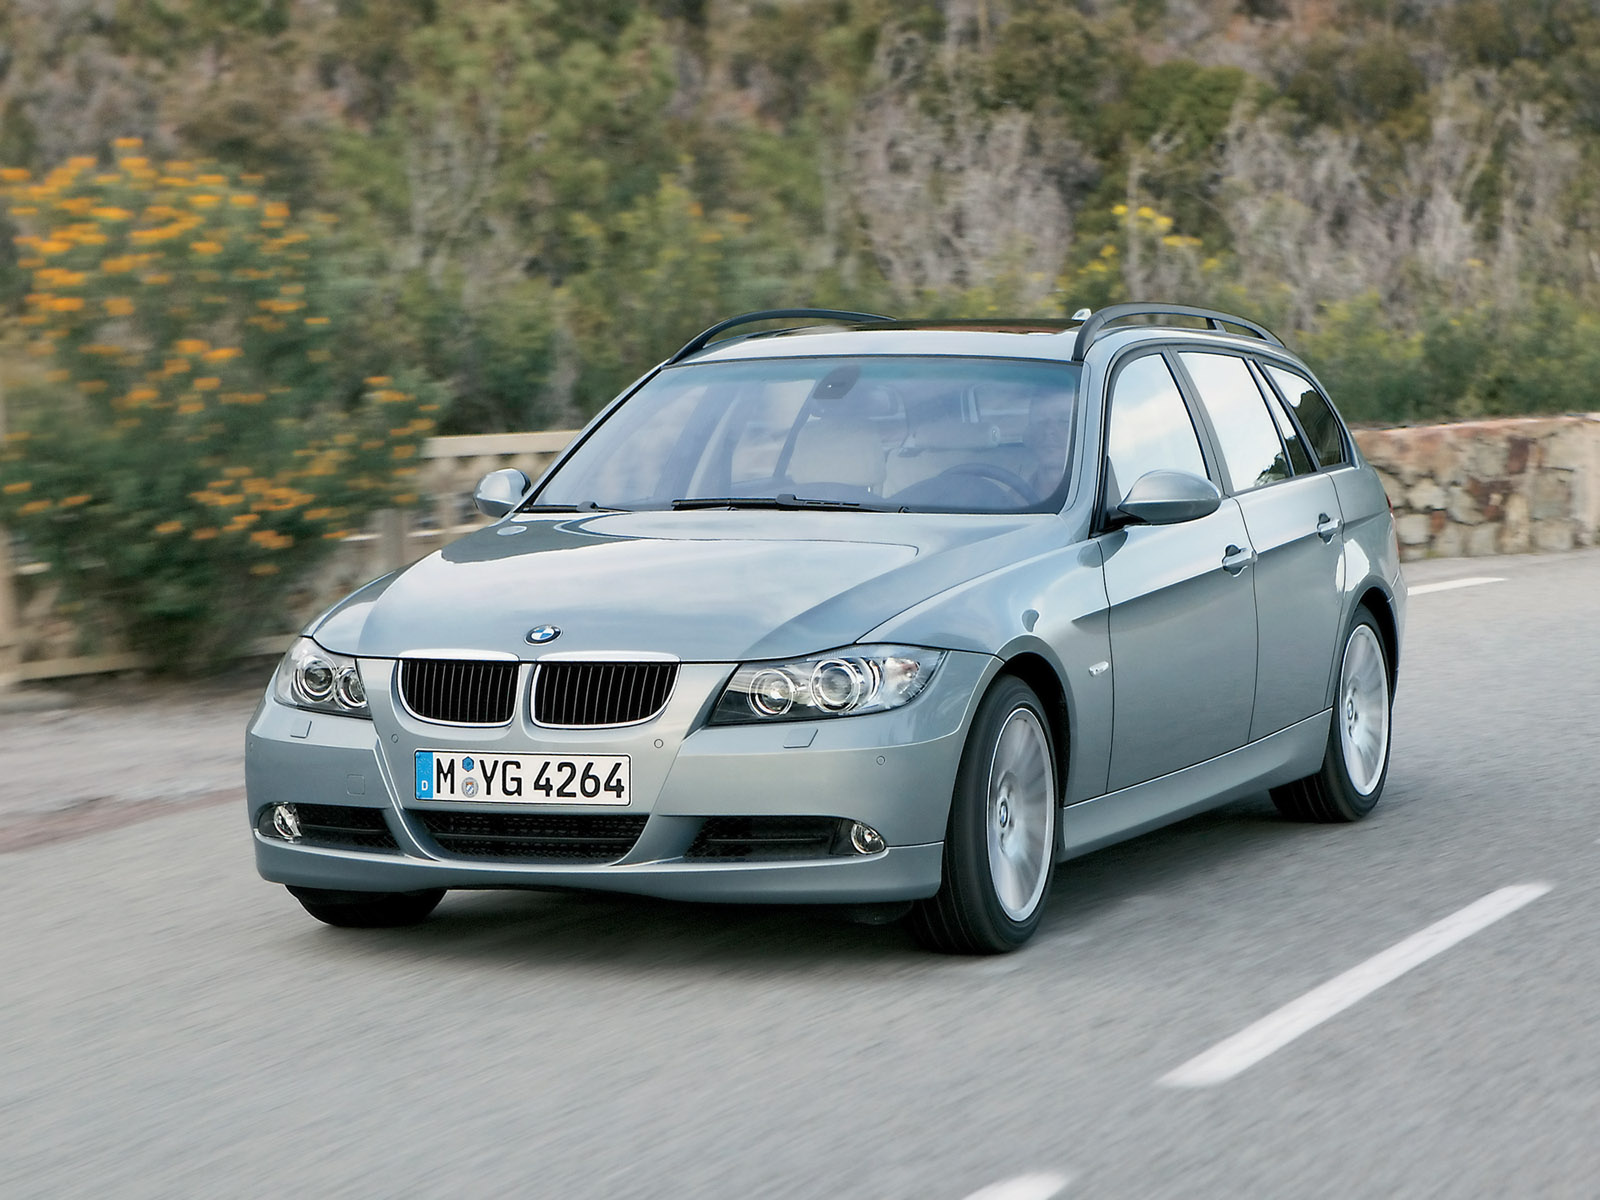 2006 BMW 3 Series Sports Wagon Review - Top Speed